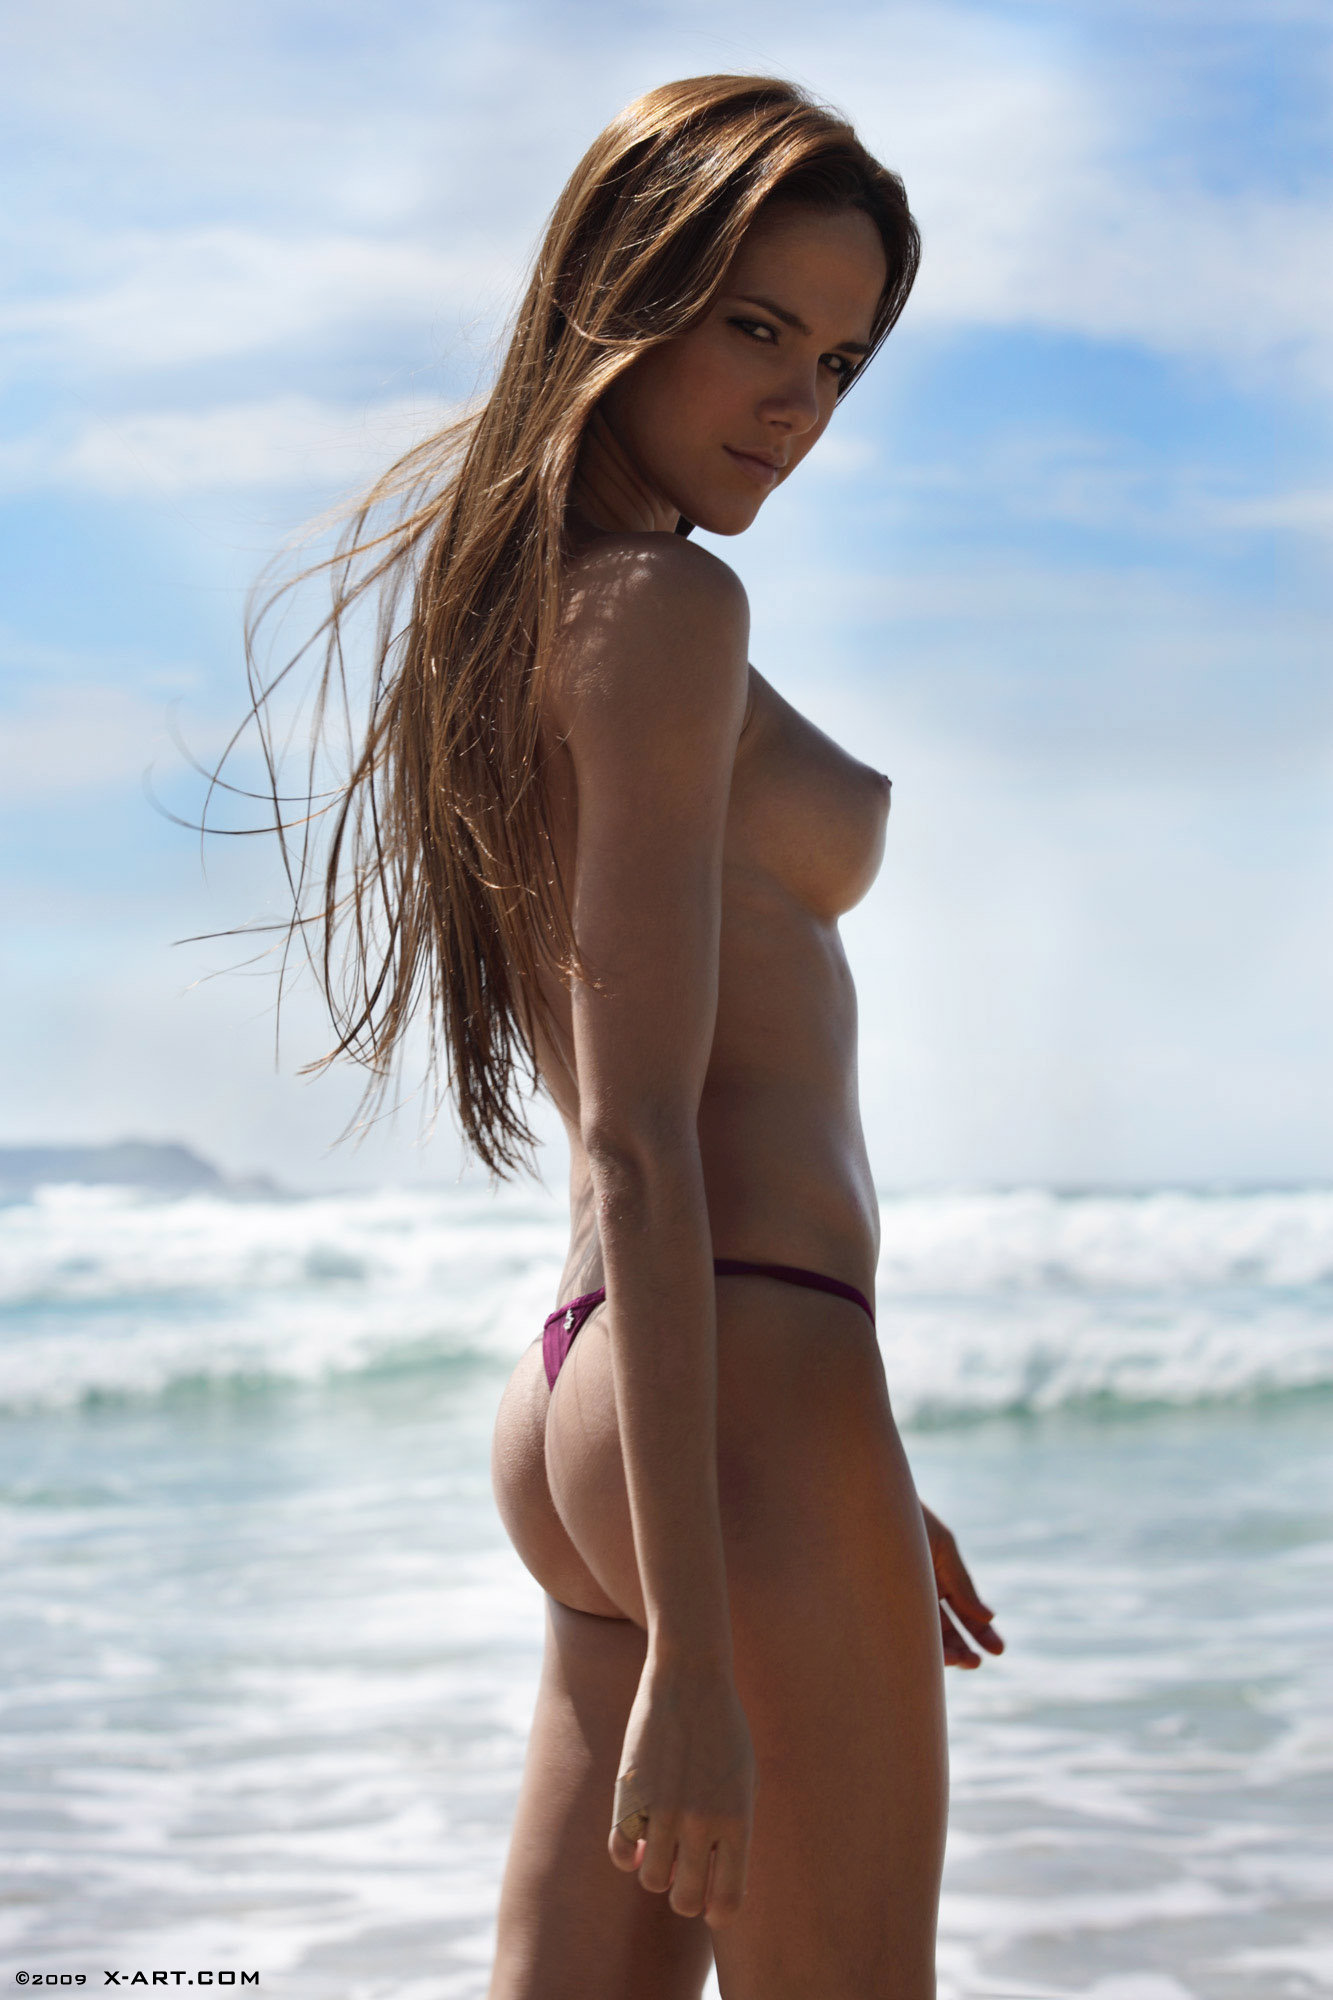 beautiful breasts on the beach